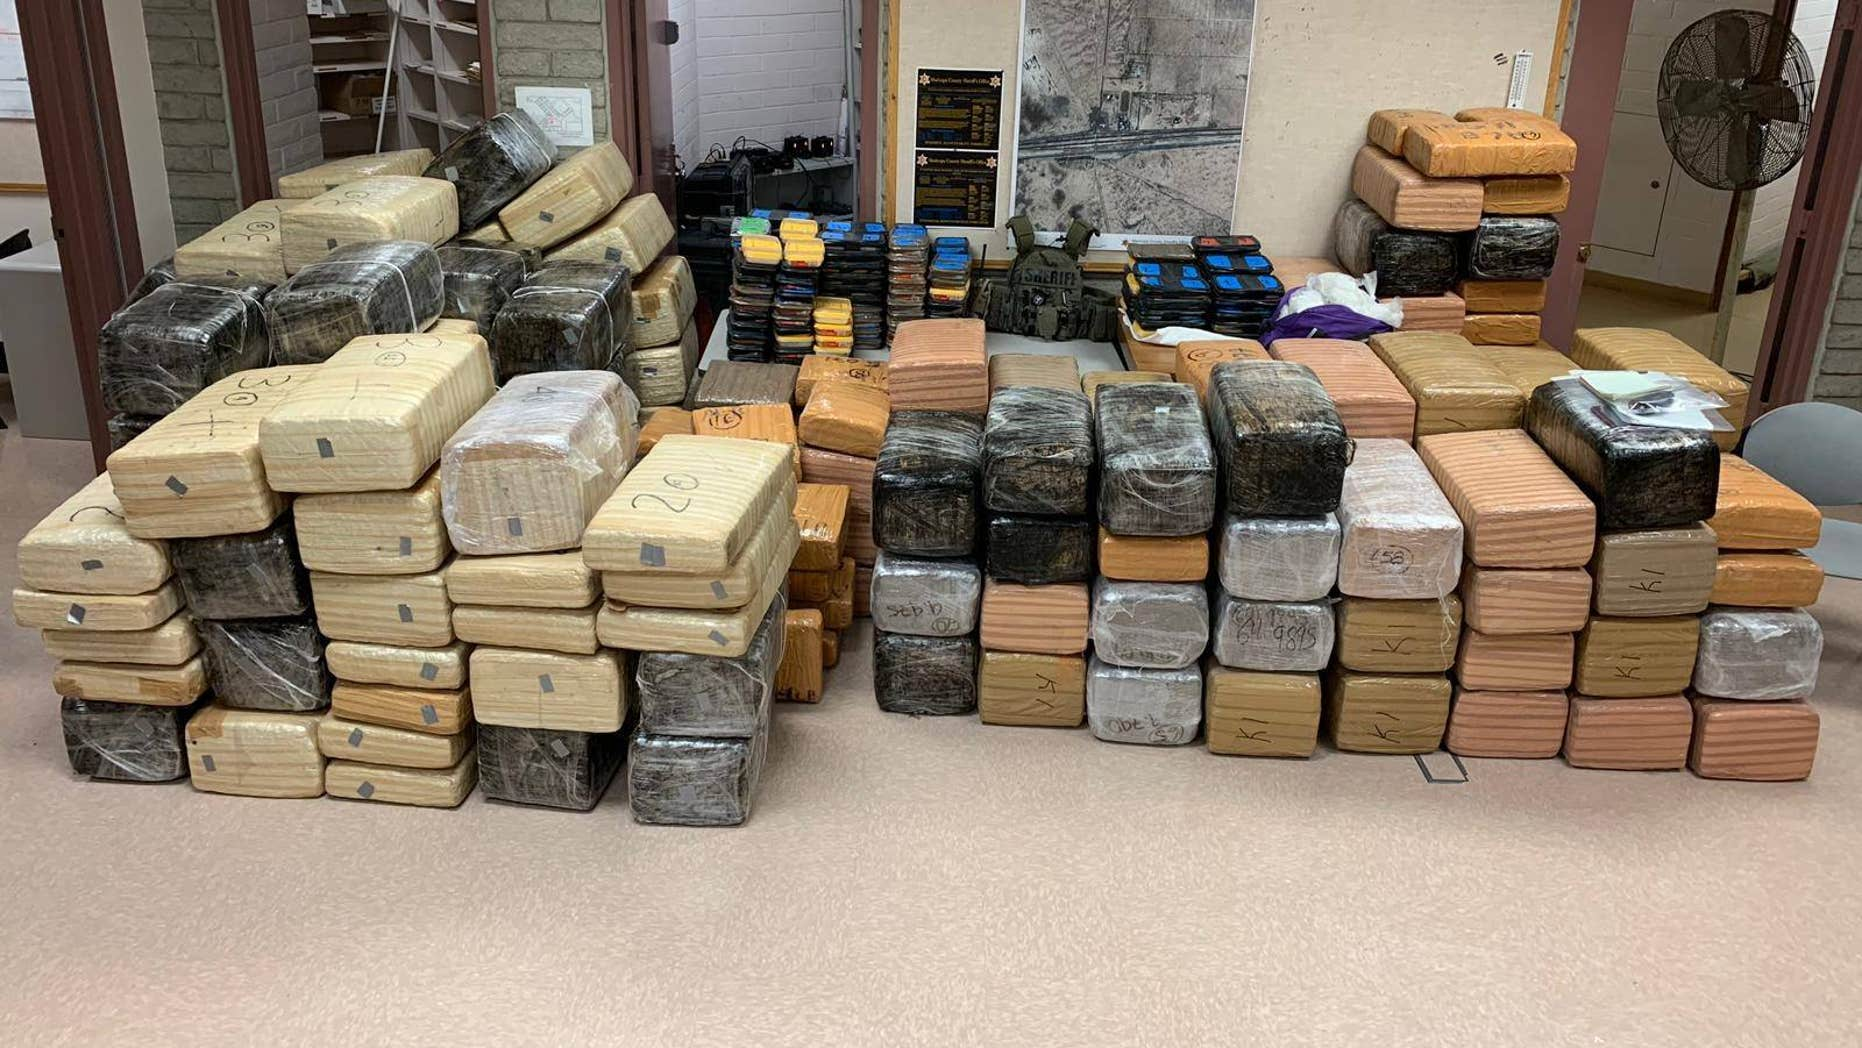 An estimated $2 million worth of methamphetamine and marijuana was seized in Arizona this week, officials said Friday.